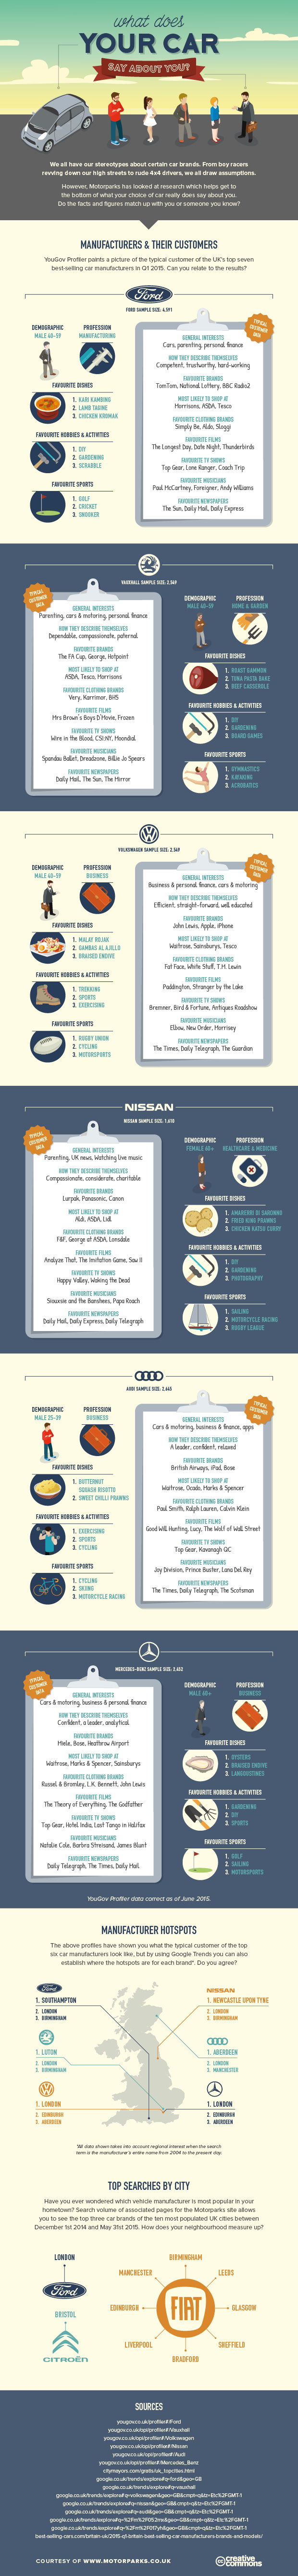 What does your car say about you